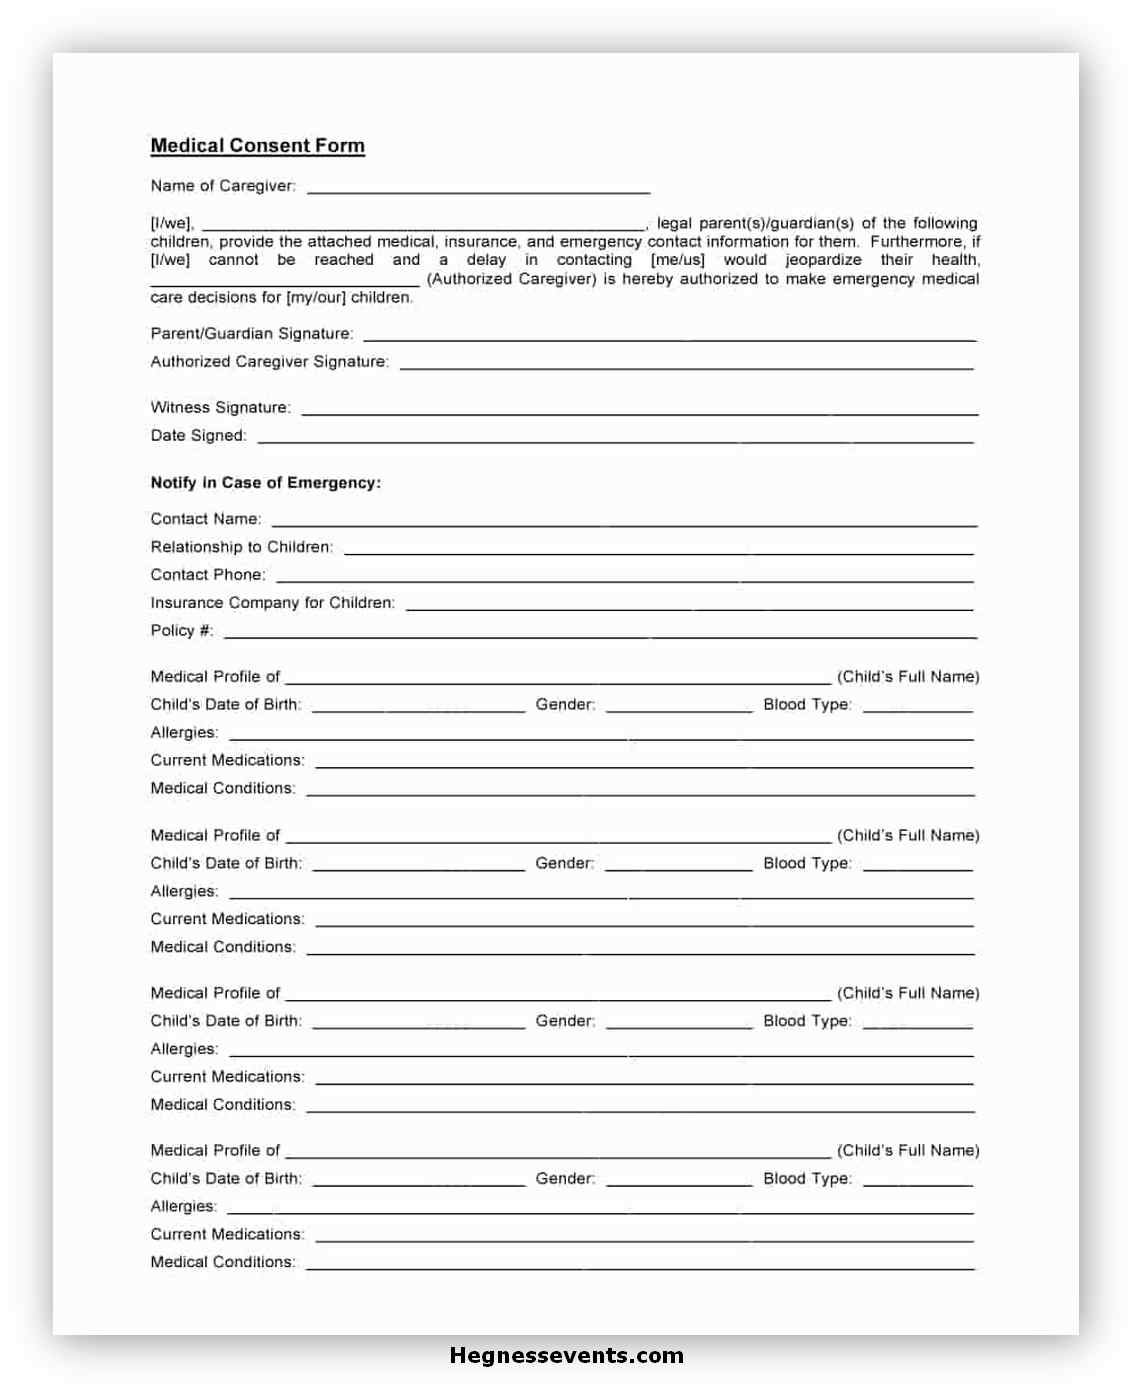 Medical Consent Form Template 01